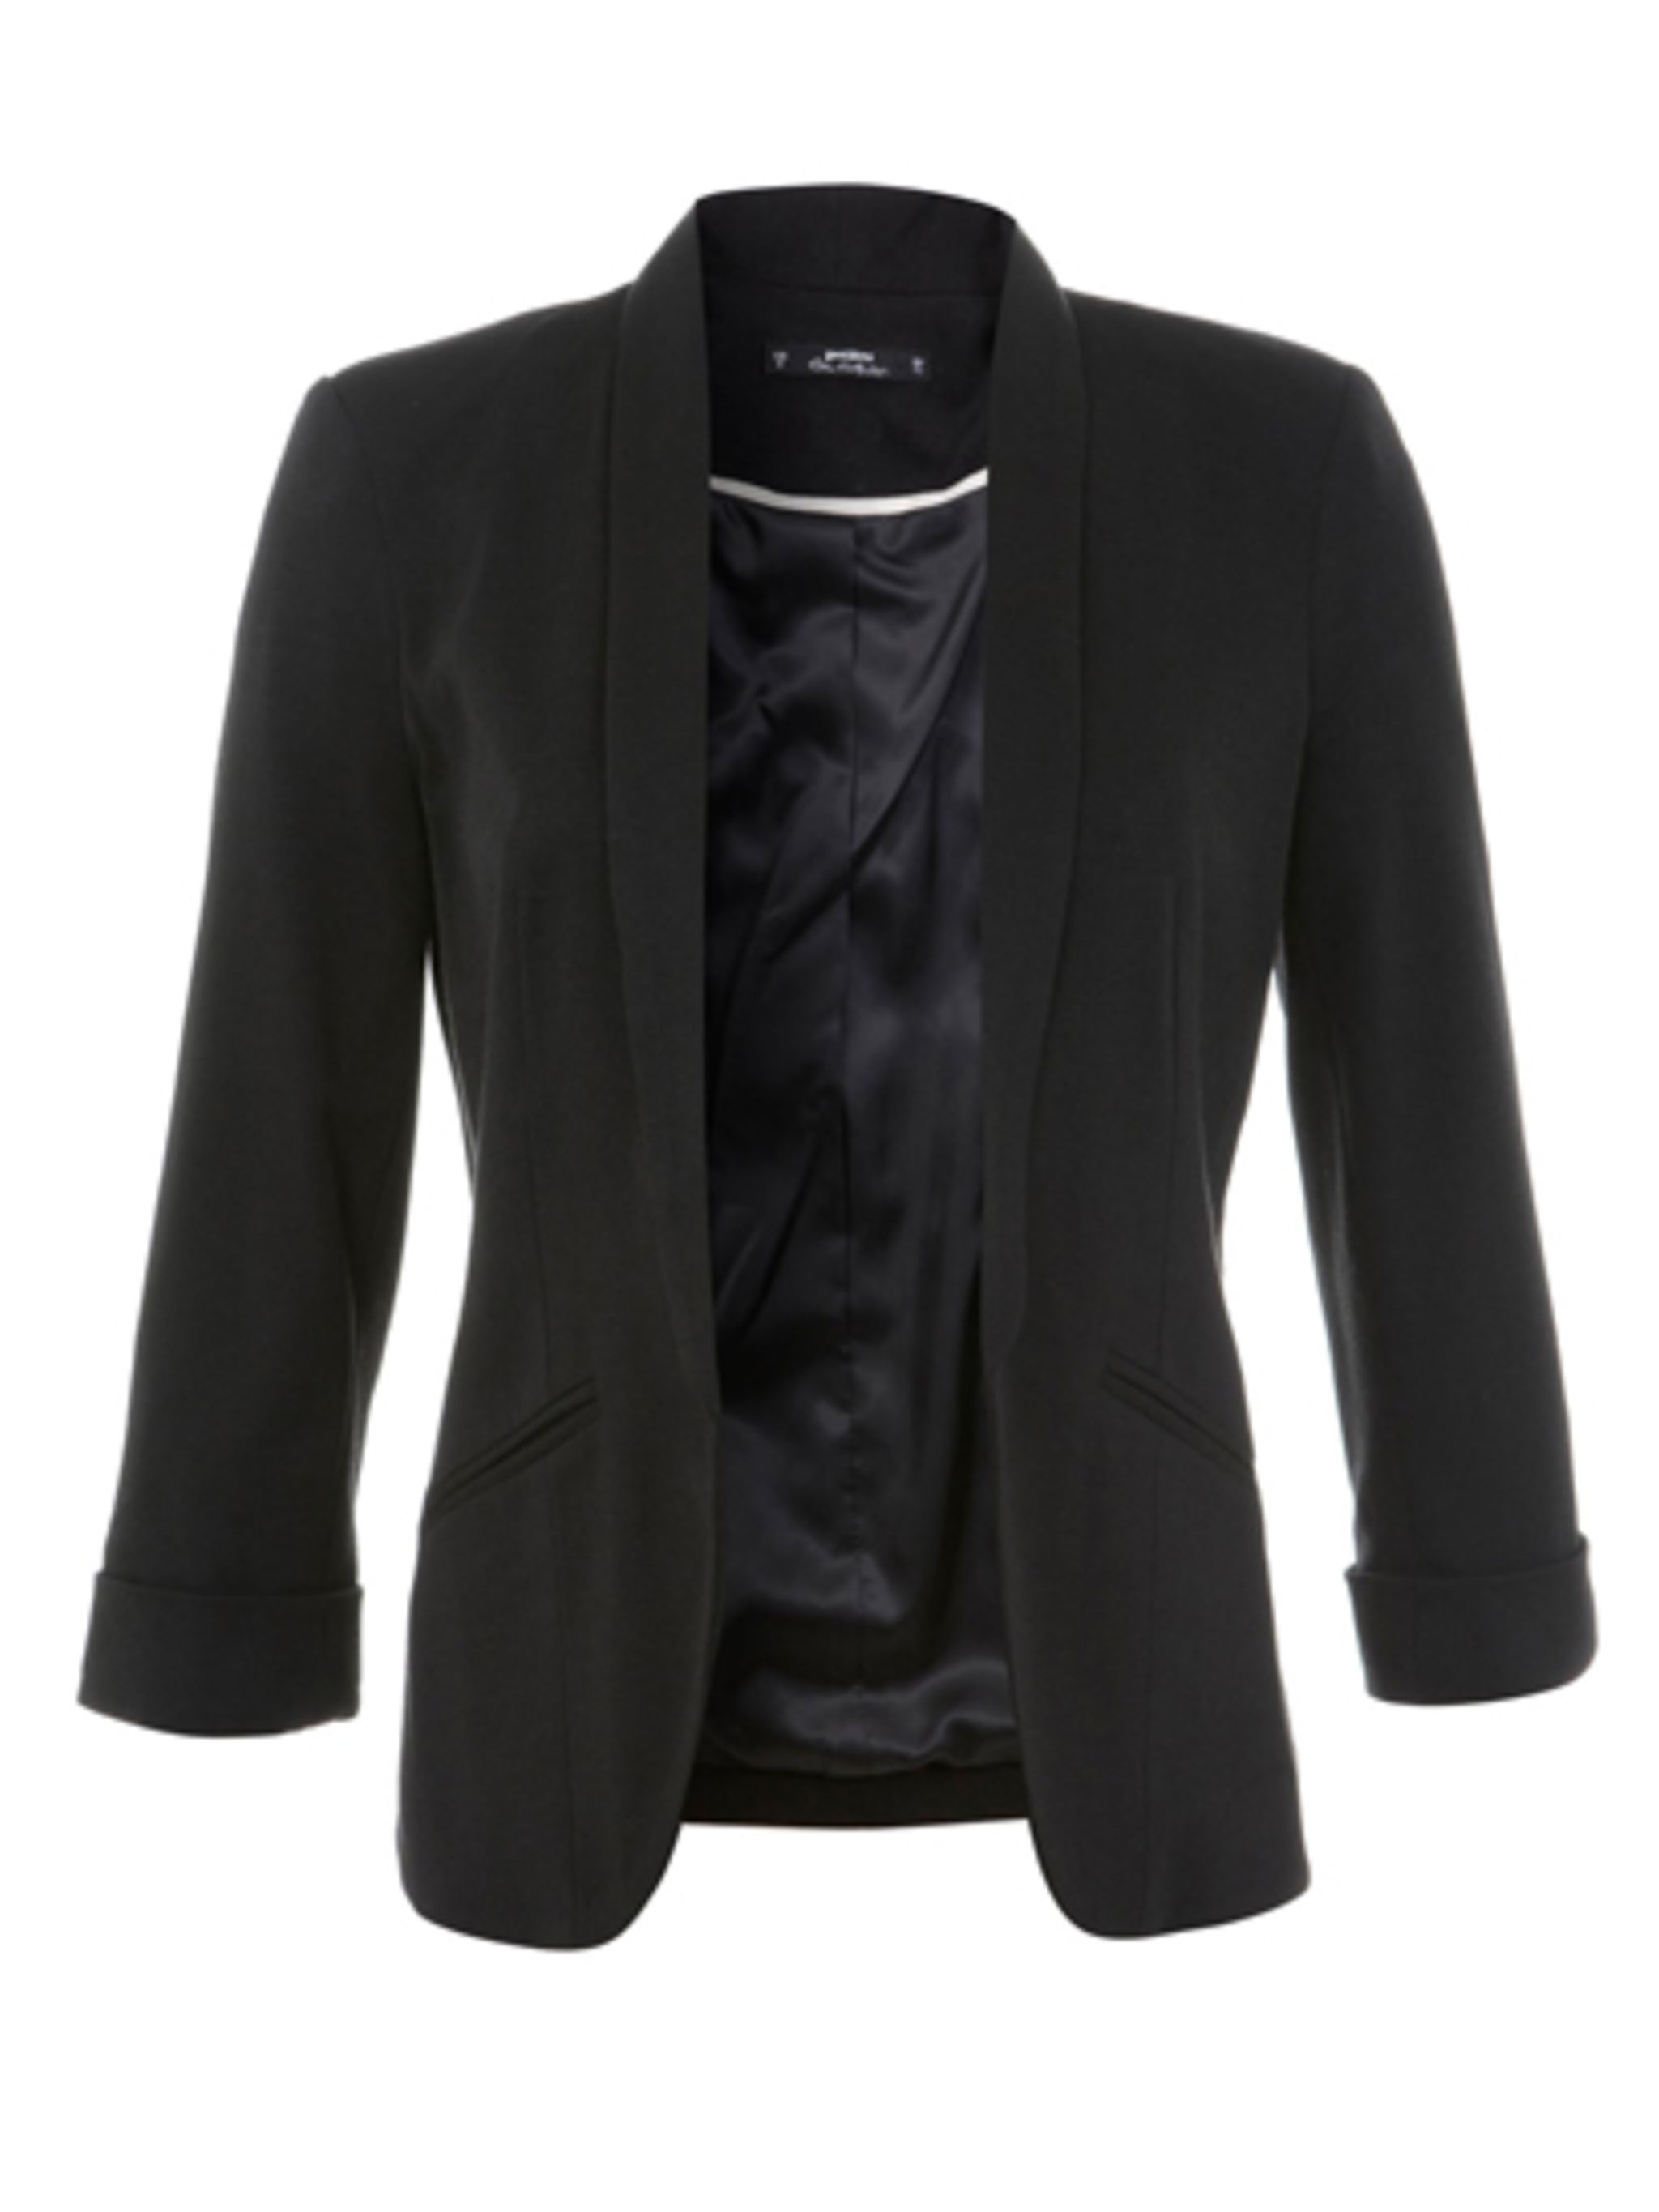 "<p>Black blazer, £39 at <a href=""http://www.missselfridge.com/en/msuk/product/clothing-299047/coats-jackets-299068/blazers-299194/petites-black-jersey-blazer-3232384?refinements=category~%5b208080%7c208077%5d&bi=1&ps=40"">Miss Selfridge</a>.</p>"